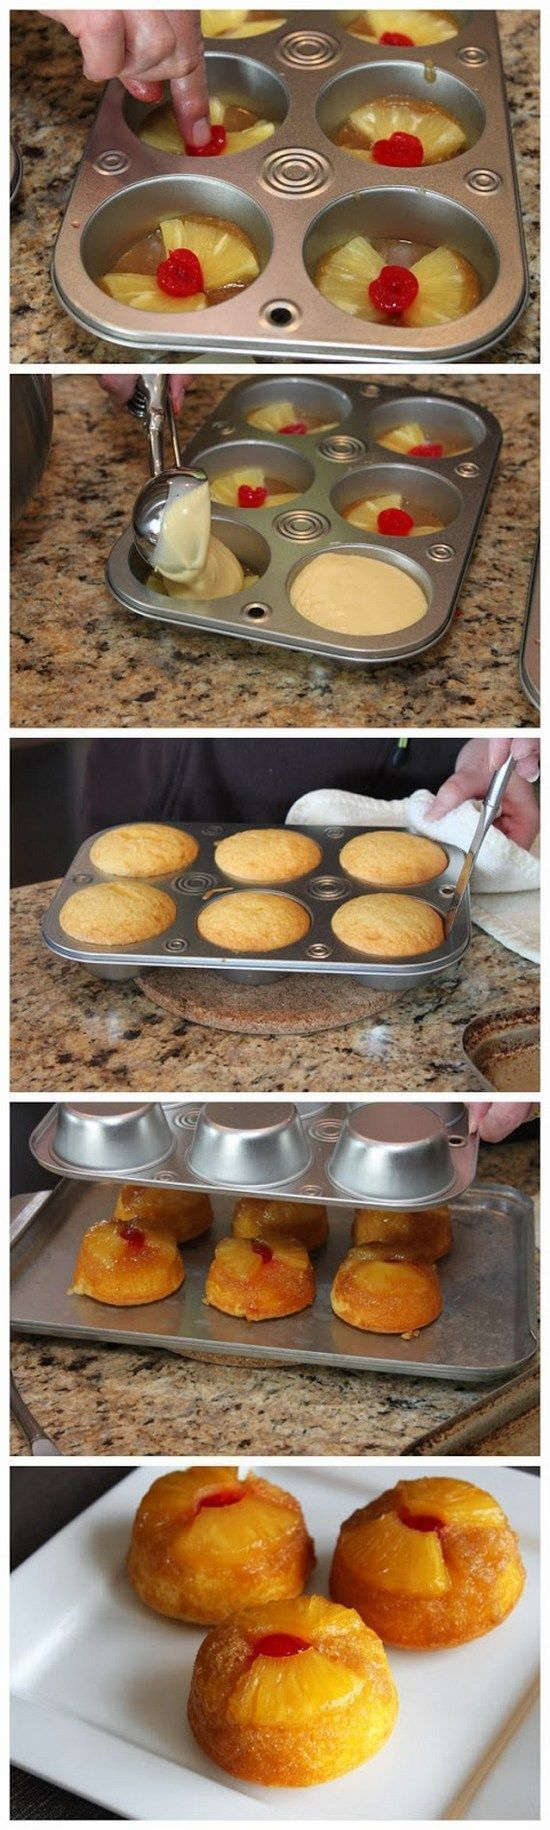 Pineapple Upside-Down Cupcakes | CookJino